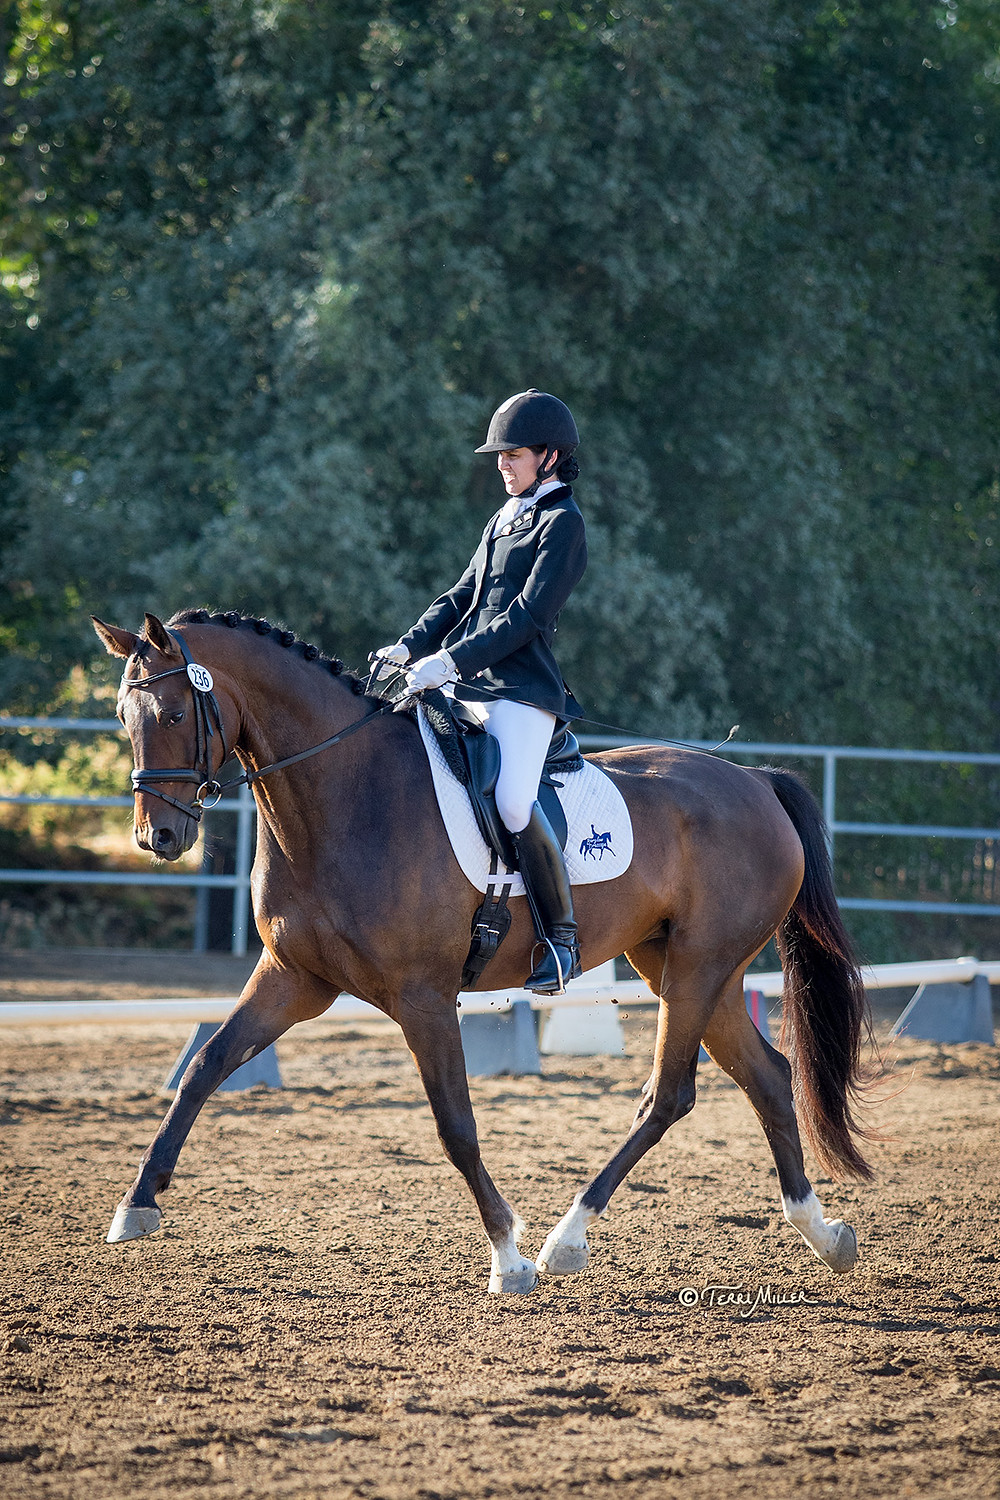 Katy Barglow riding Ferucicco, photo by Terri Miller